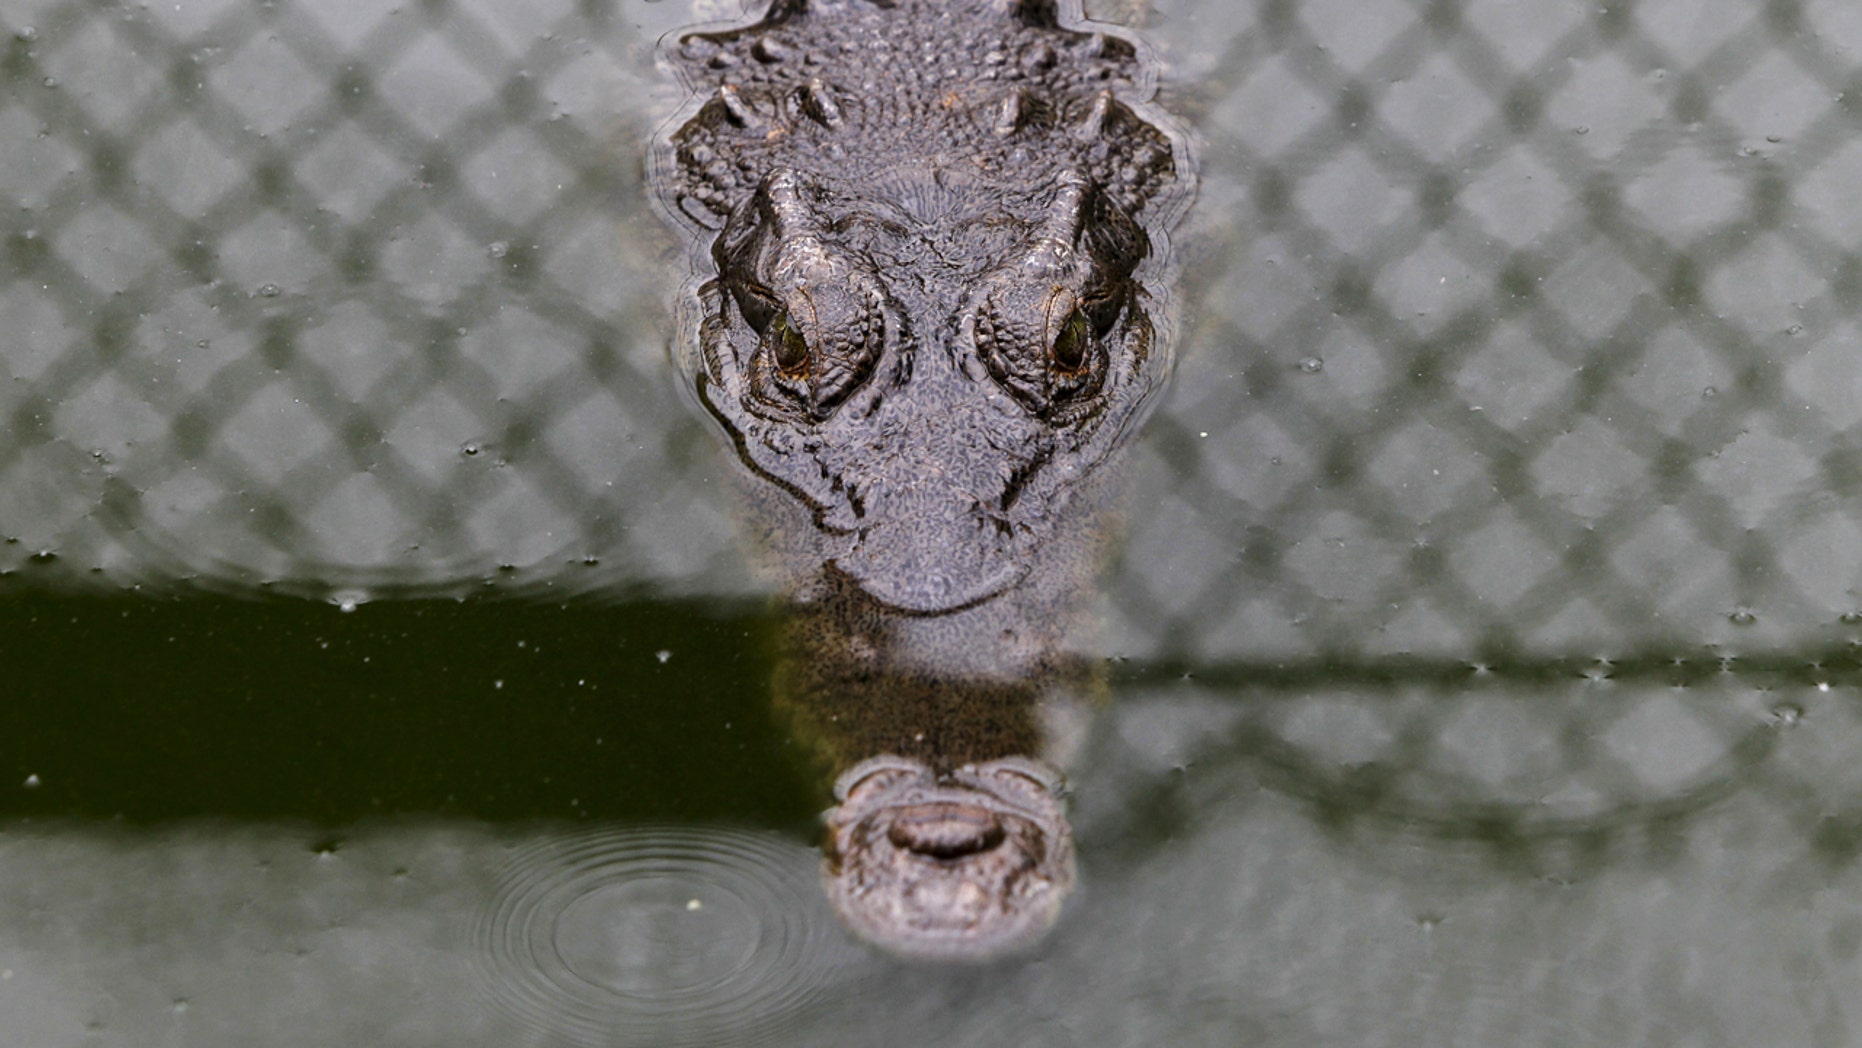 The tourist was said to be fighting for his life after the crocodile attack.